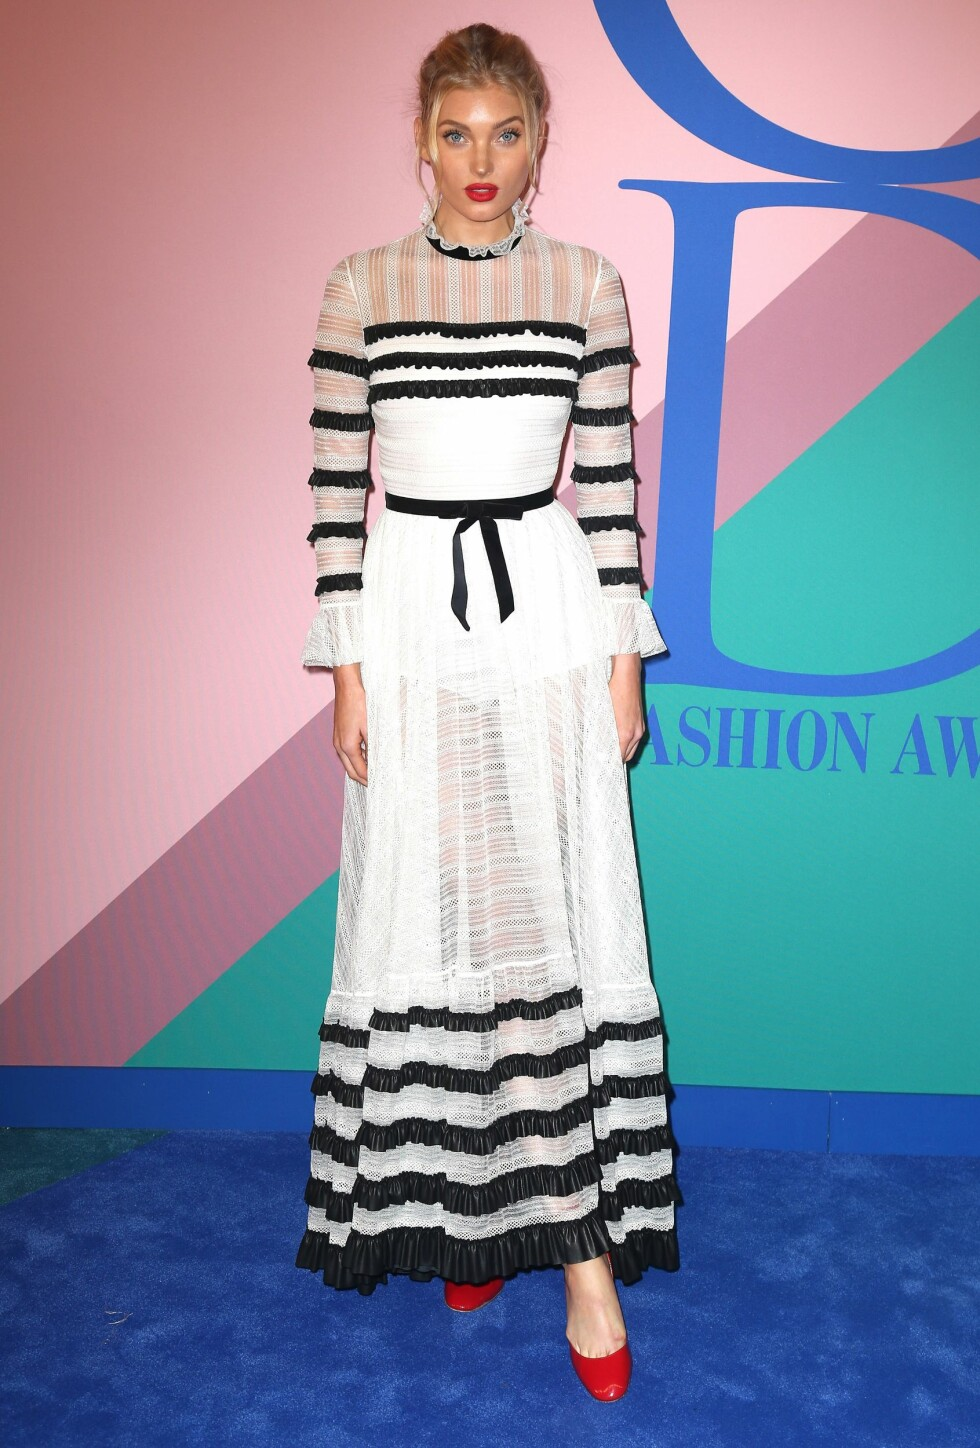 CFDA FASHION AWARDS: Elsa Hosk Foto: Shutterstock